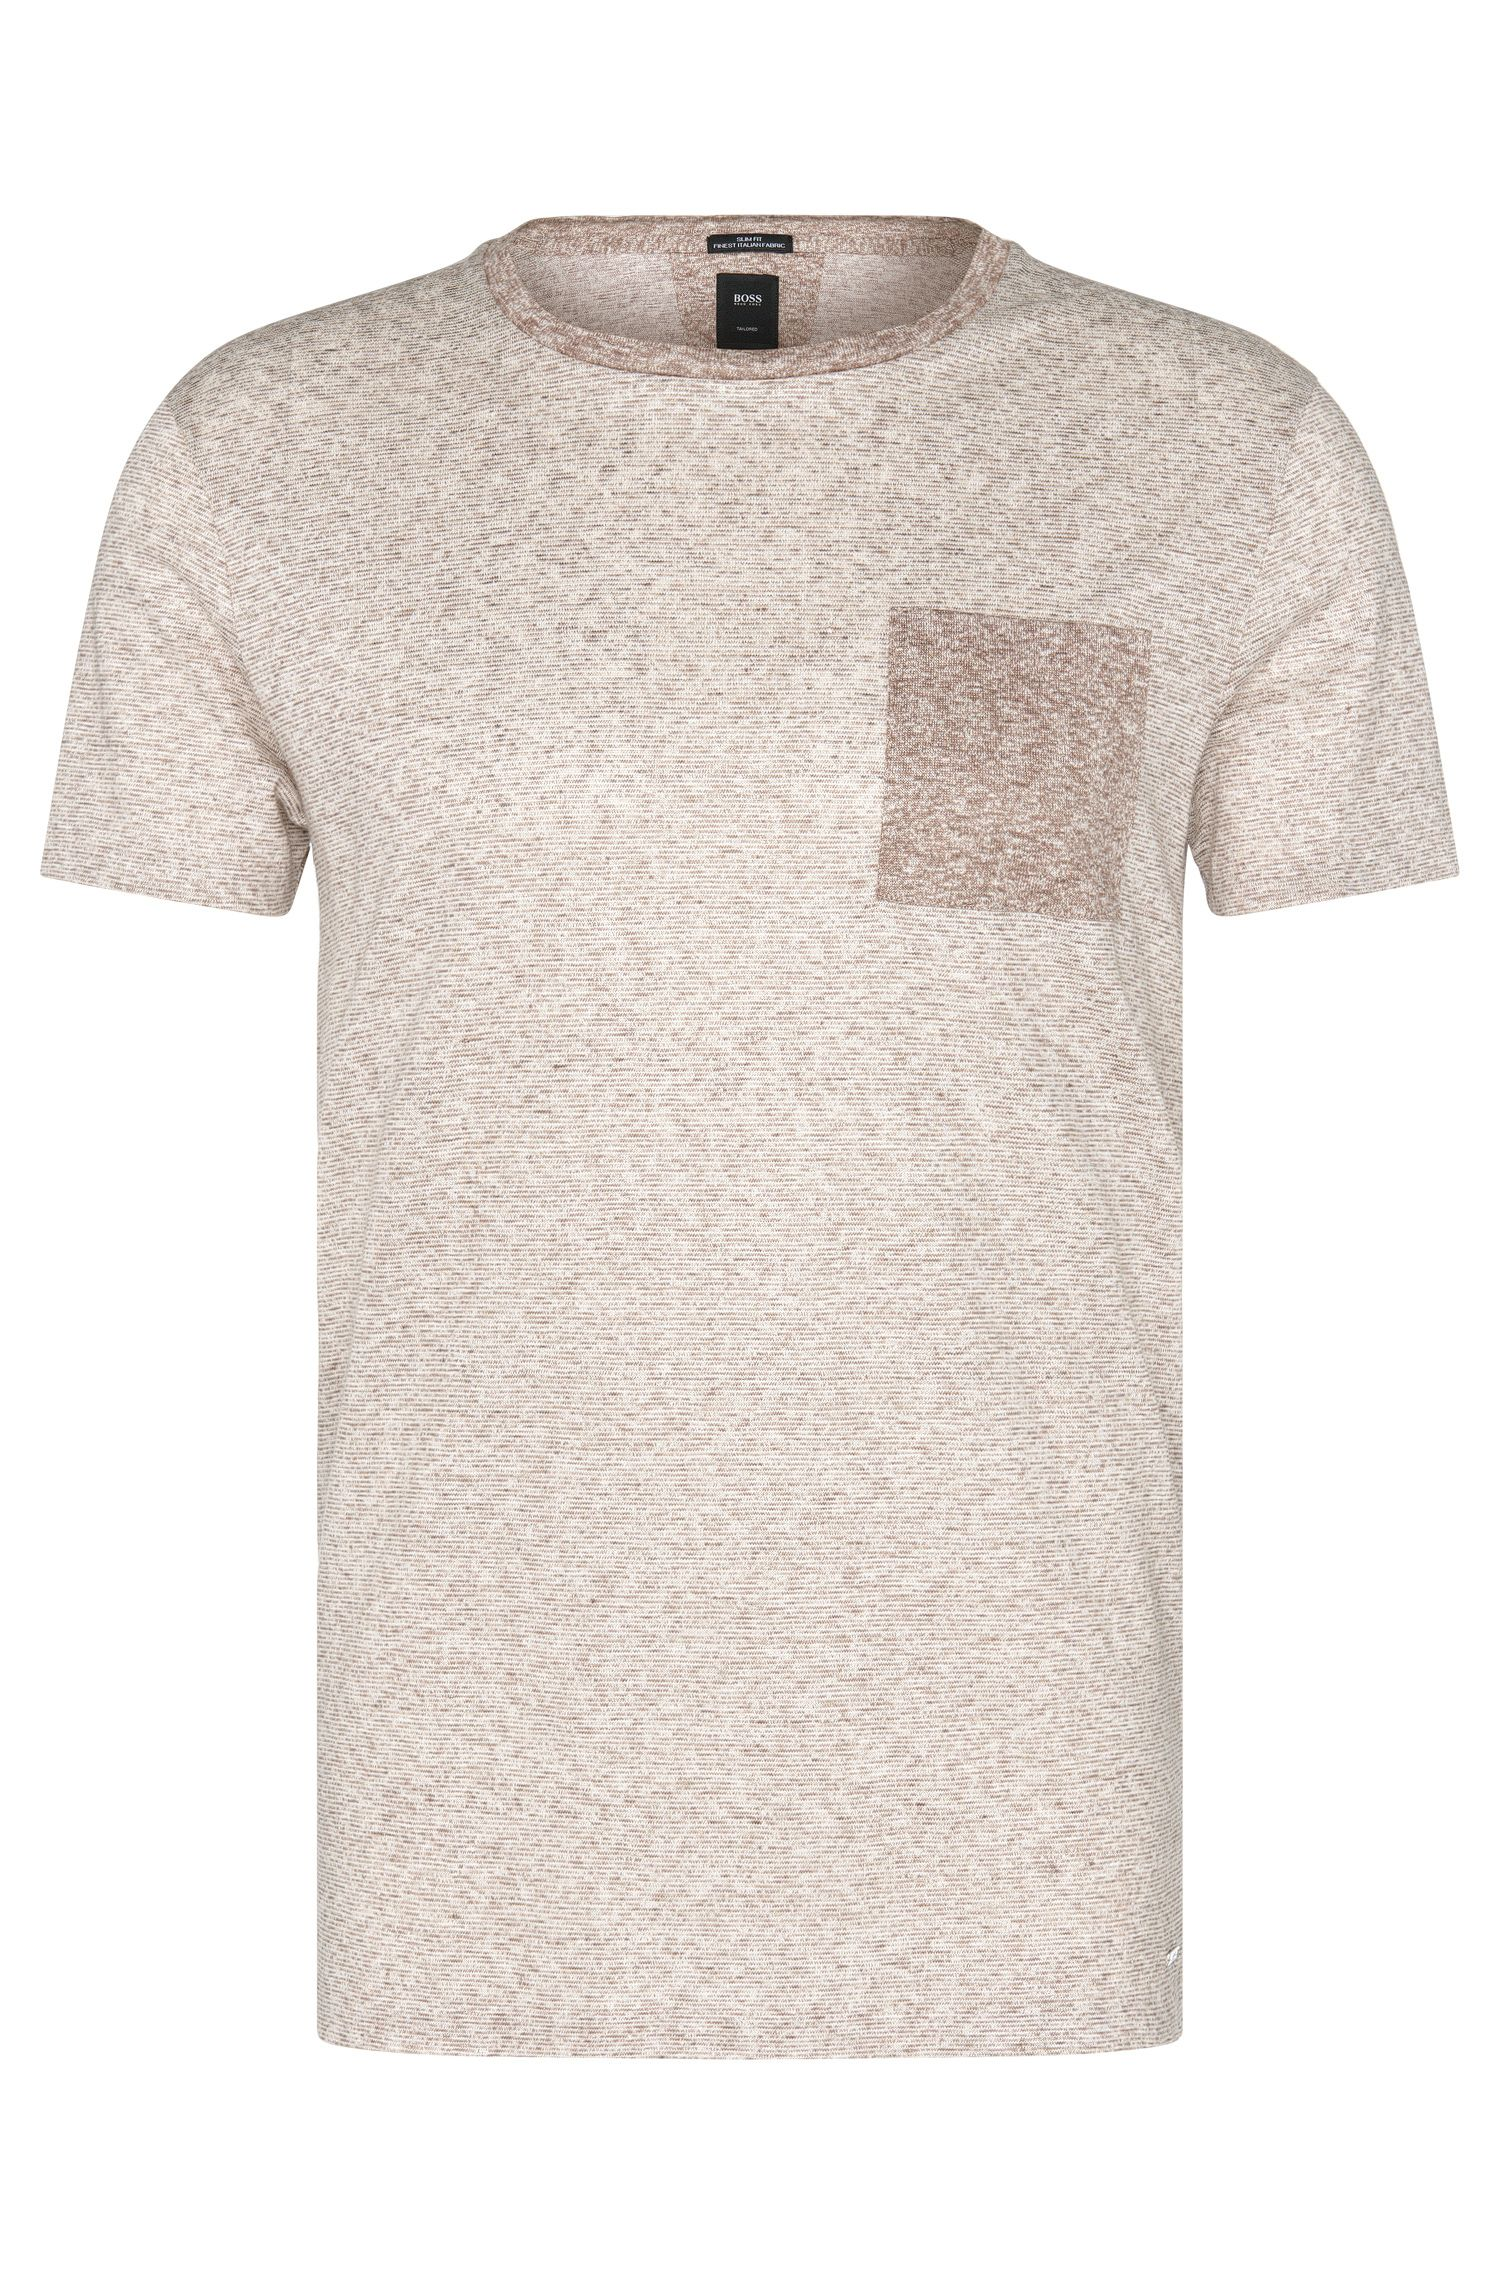 Gemustertes Slim-Fit Tailored T-Shirt aus Leinen: 'T-Tribel 24'